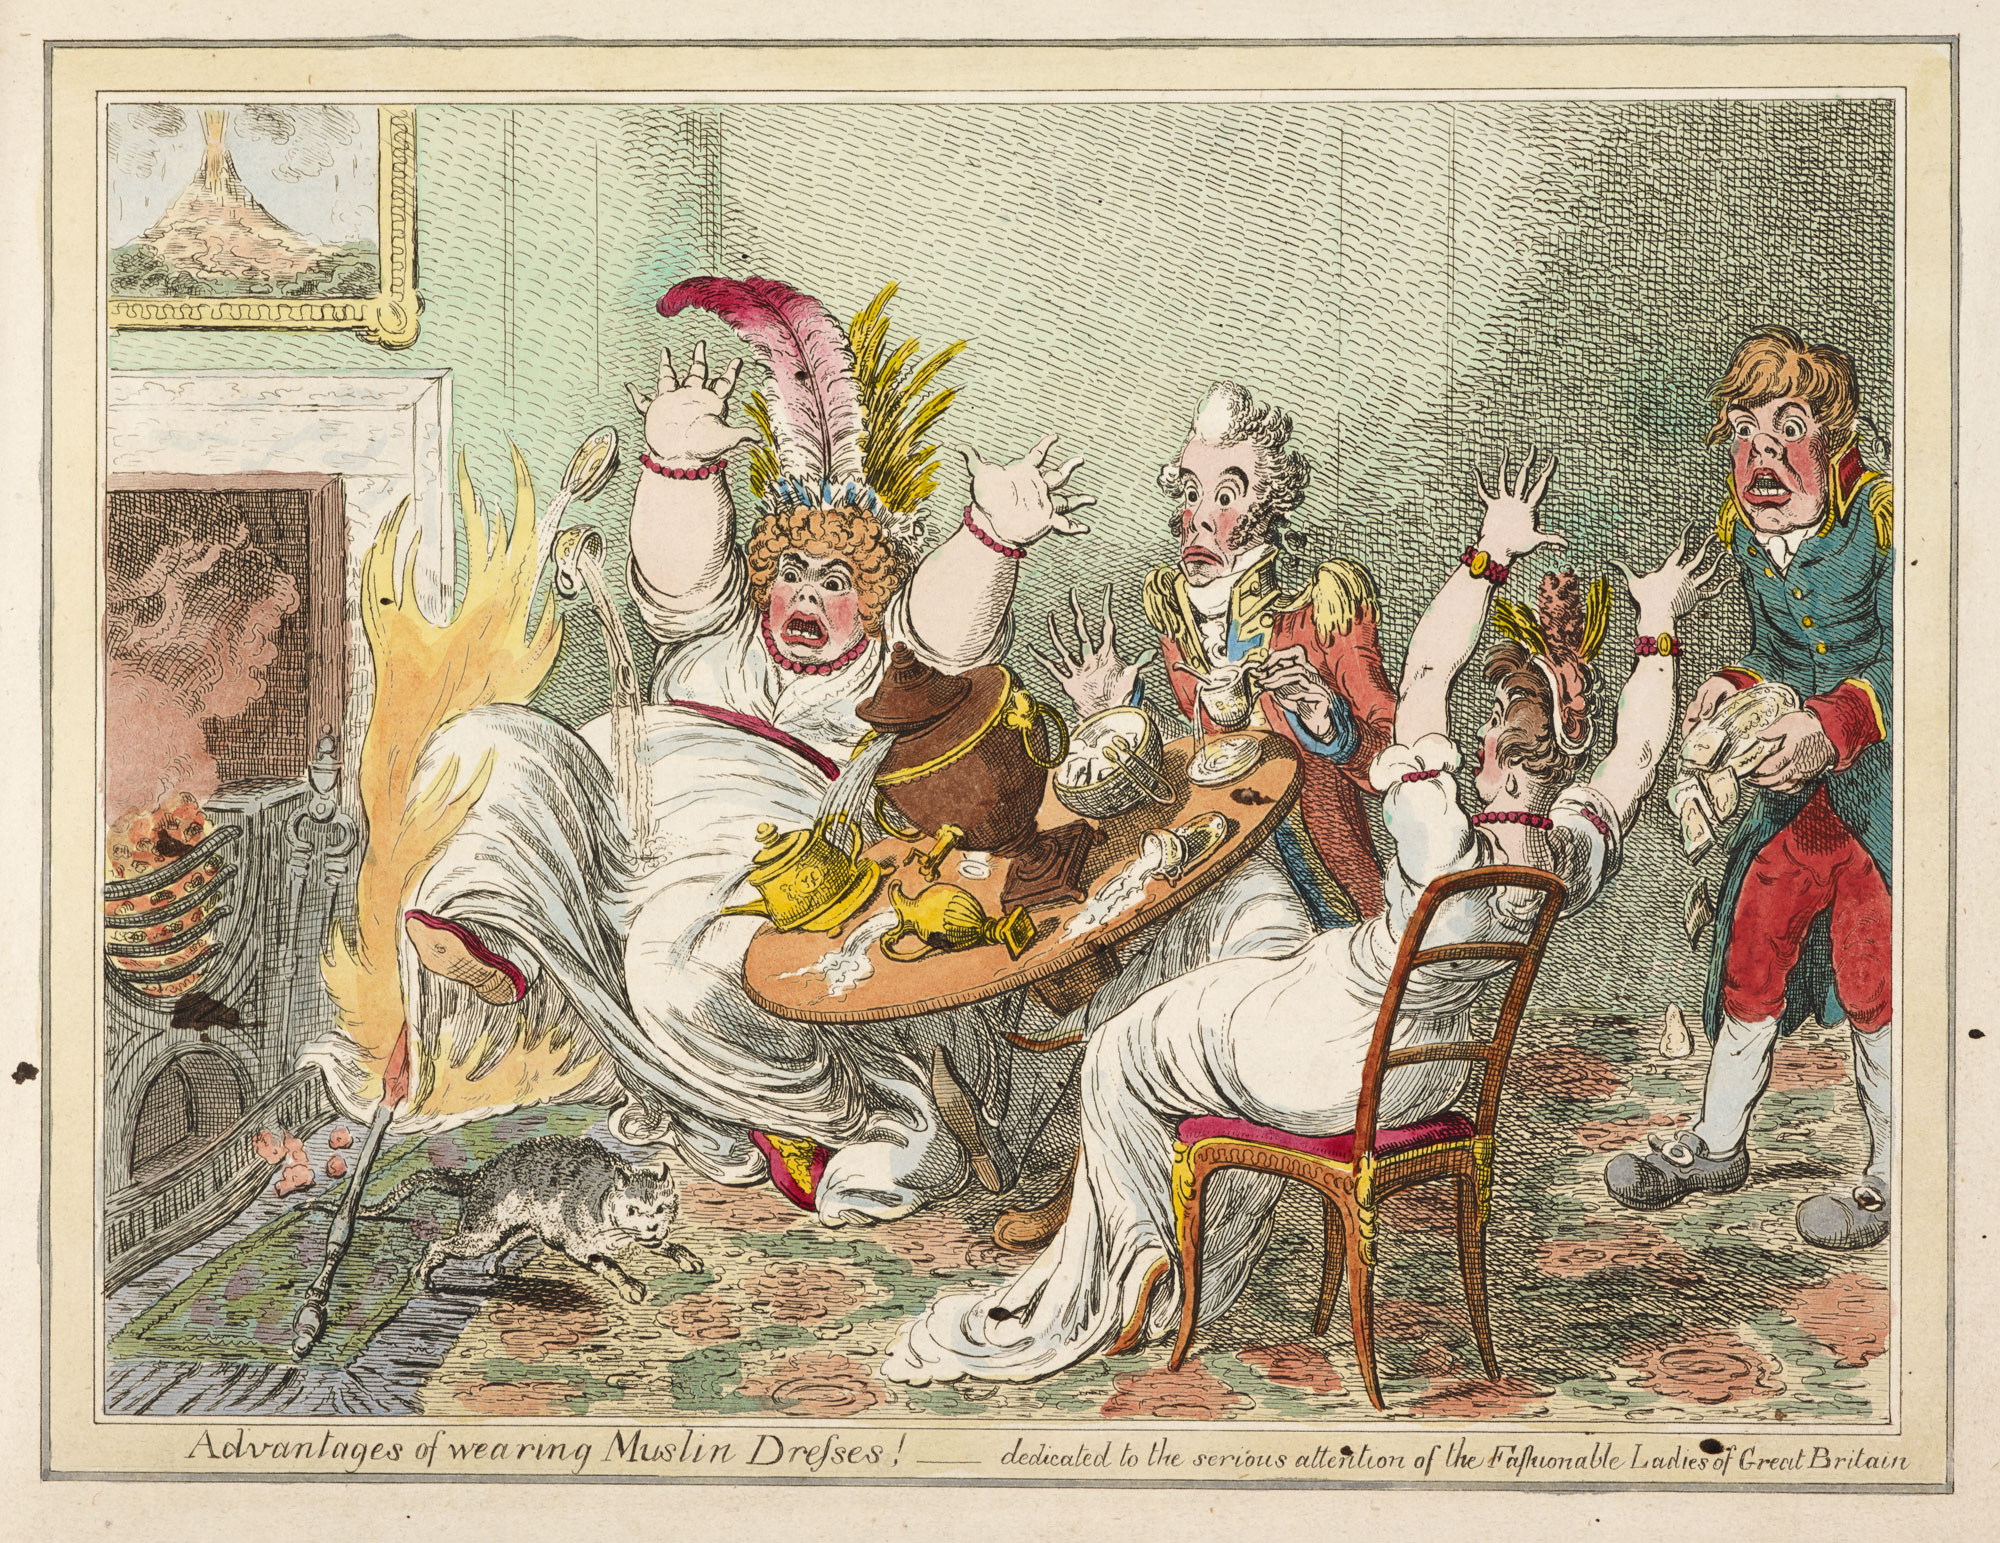 Advantages of Wearing Muslin Dresses! by Gillray